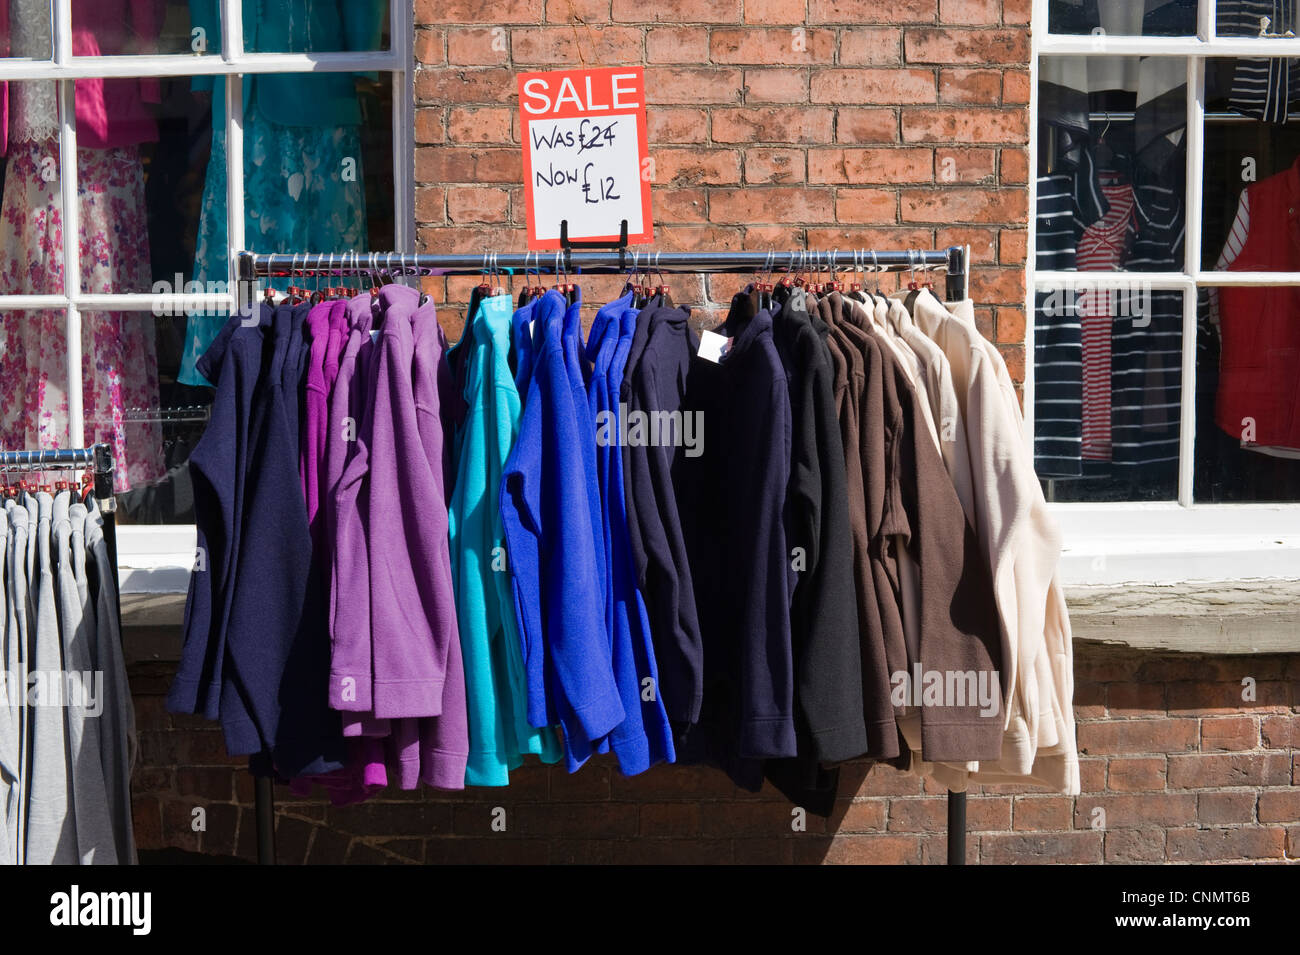 Lovely Half Price Clothing Sale On Rail Outside Shop In City Centre Of Hereford  Herefordshire England UK